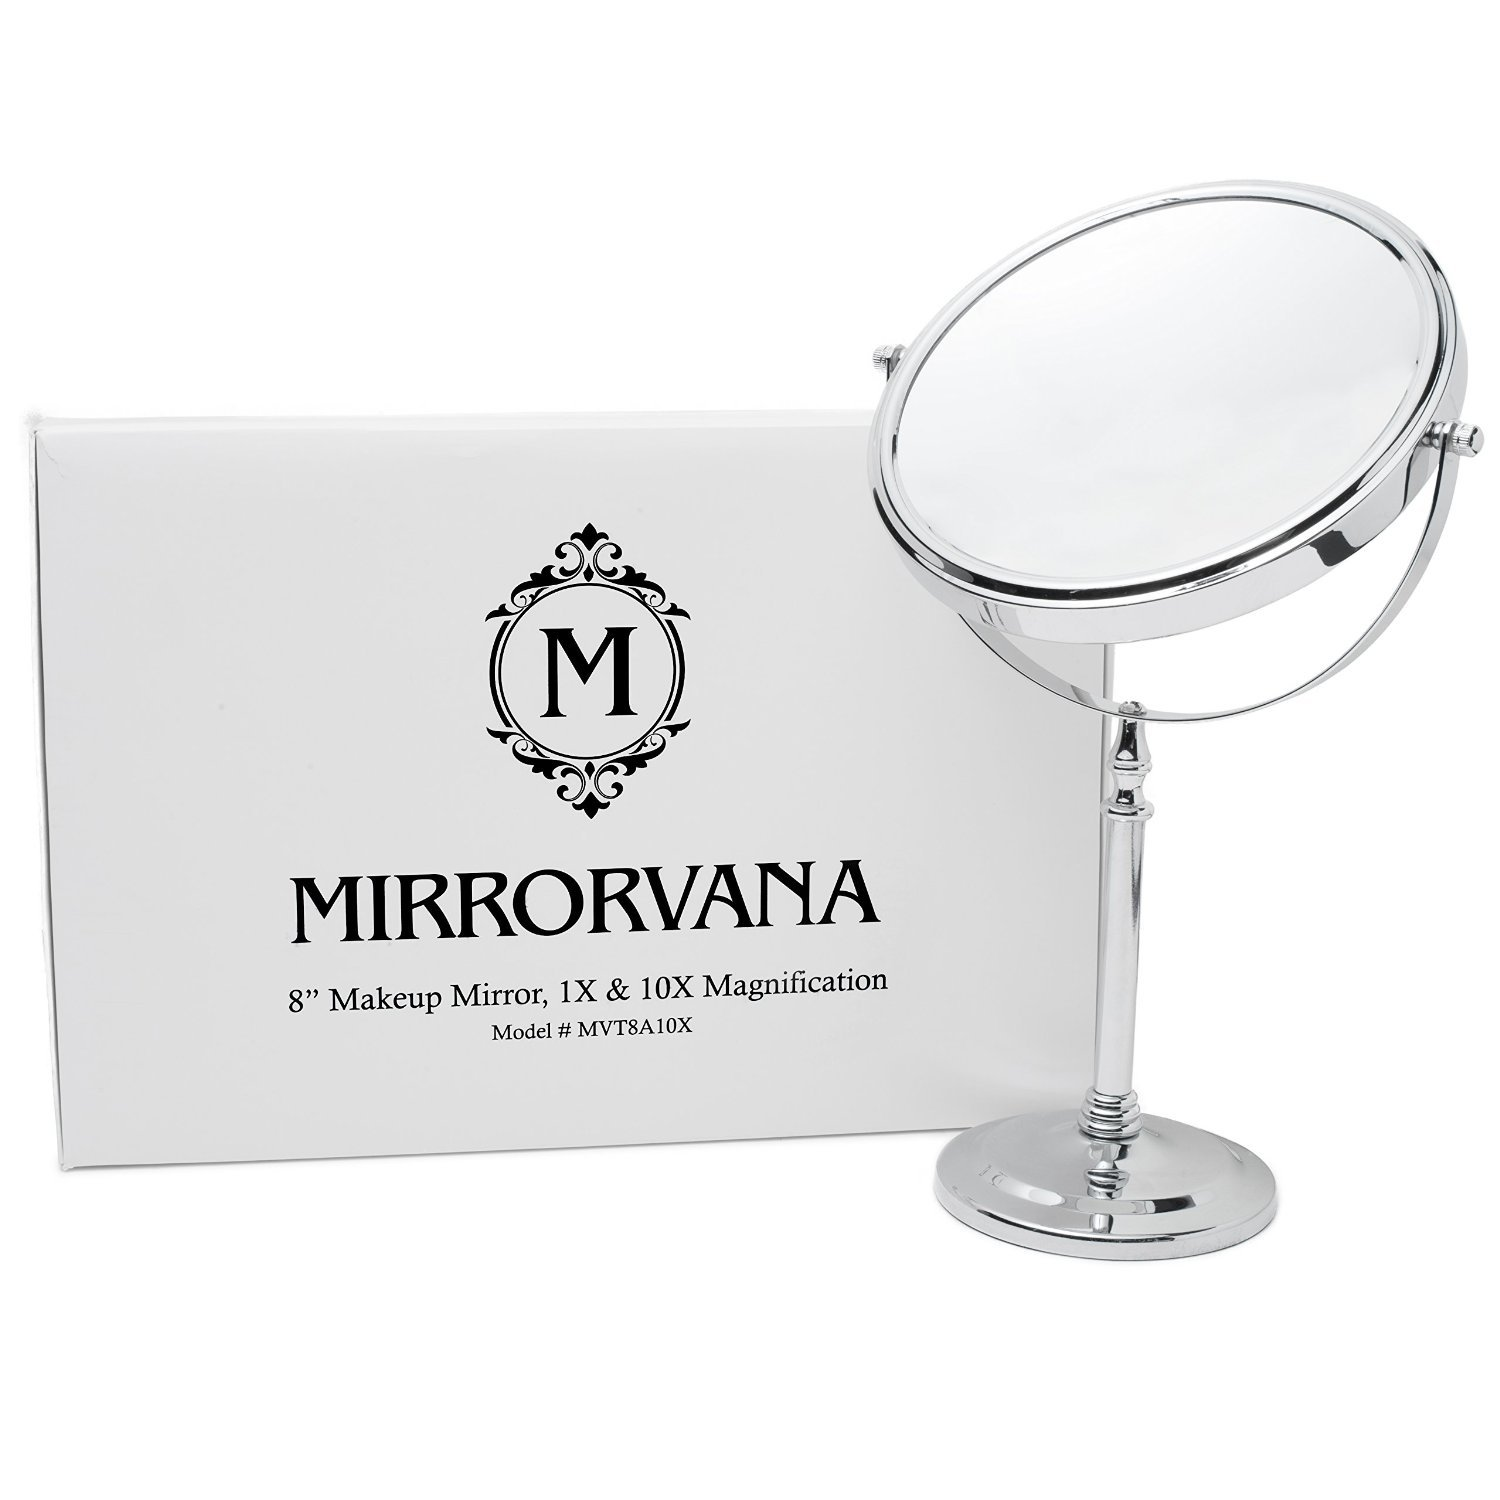 MIRRORVANA 10X Non-Lighted Tabletop Makeup Mirror Reviews